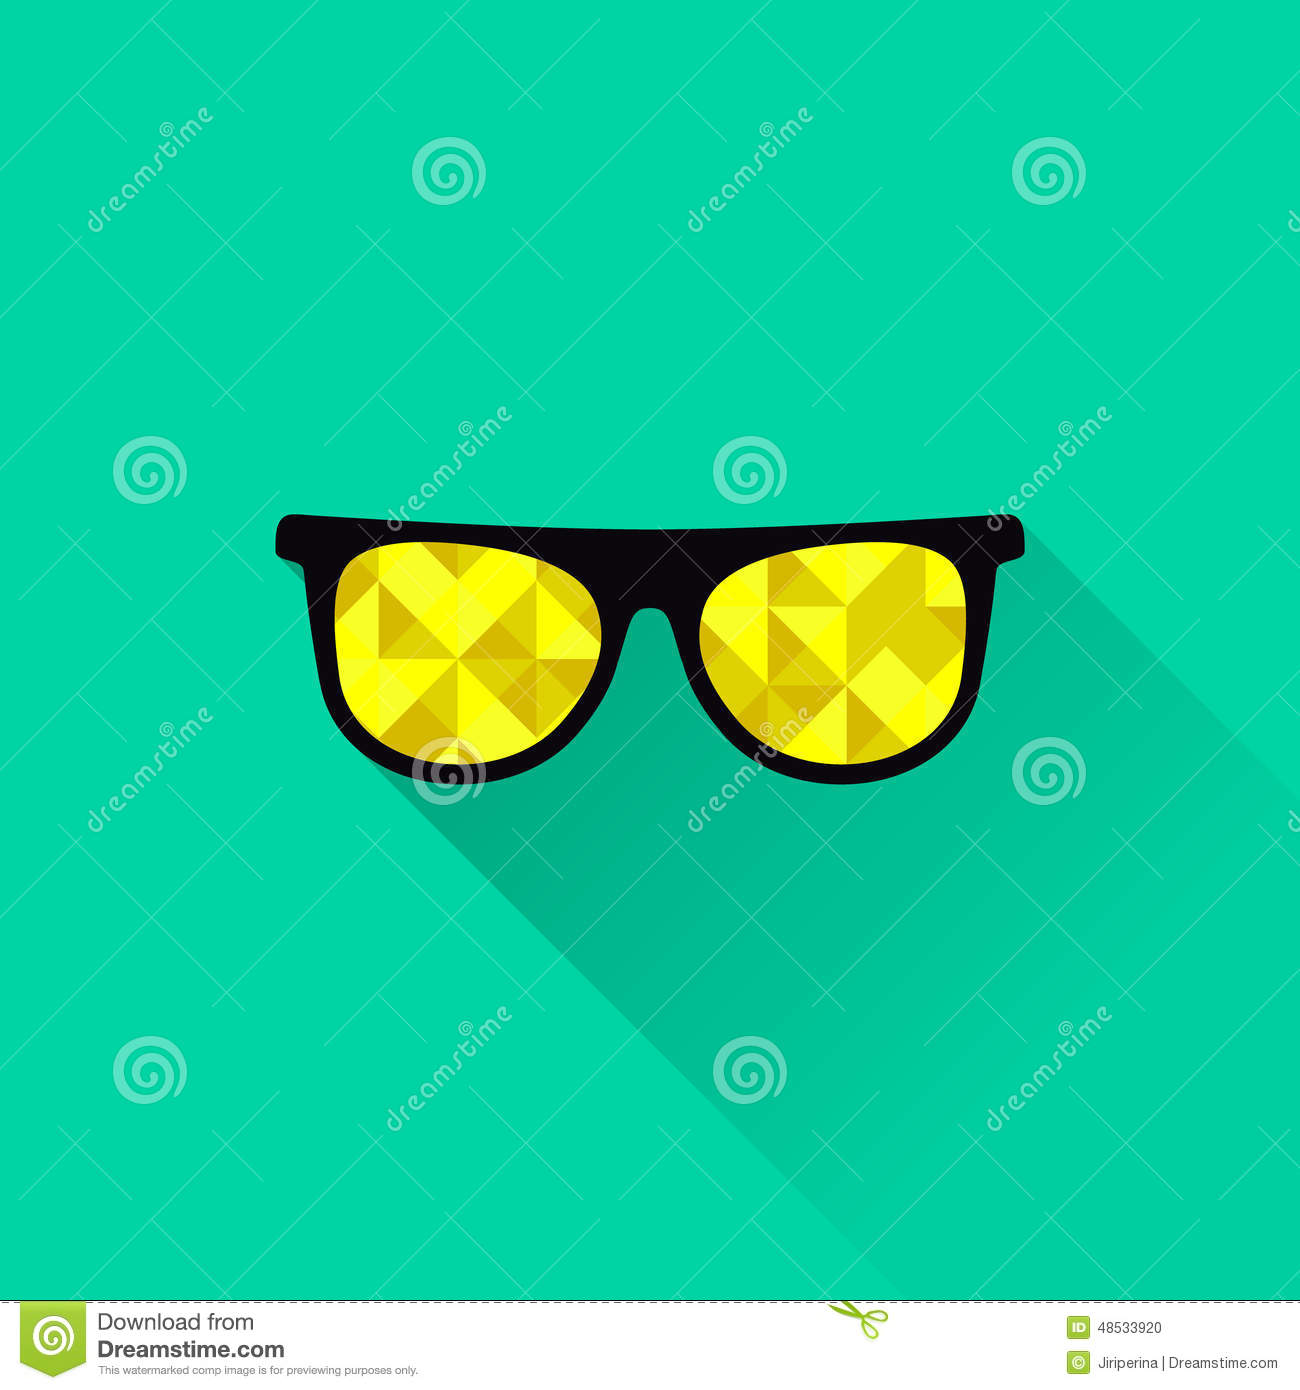 79d9602ed0ec Sunglasses with yellow lenses in flat design. Vector illustration. More  similar stock illustrations